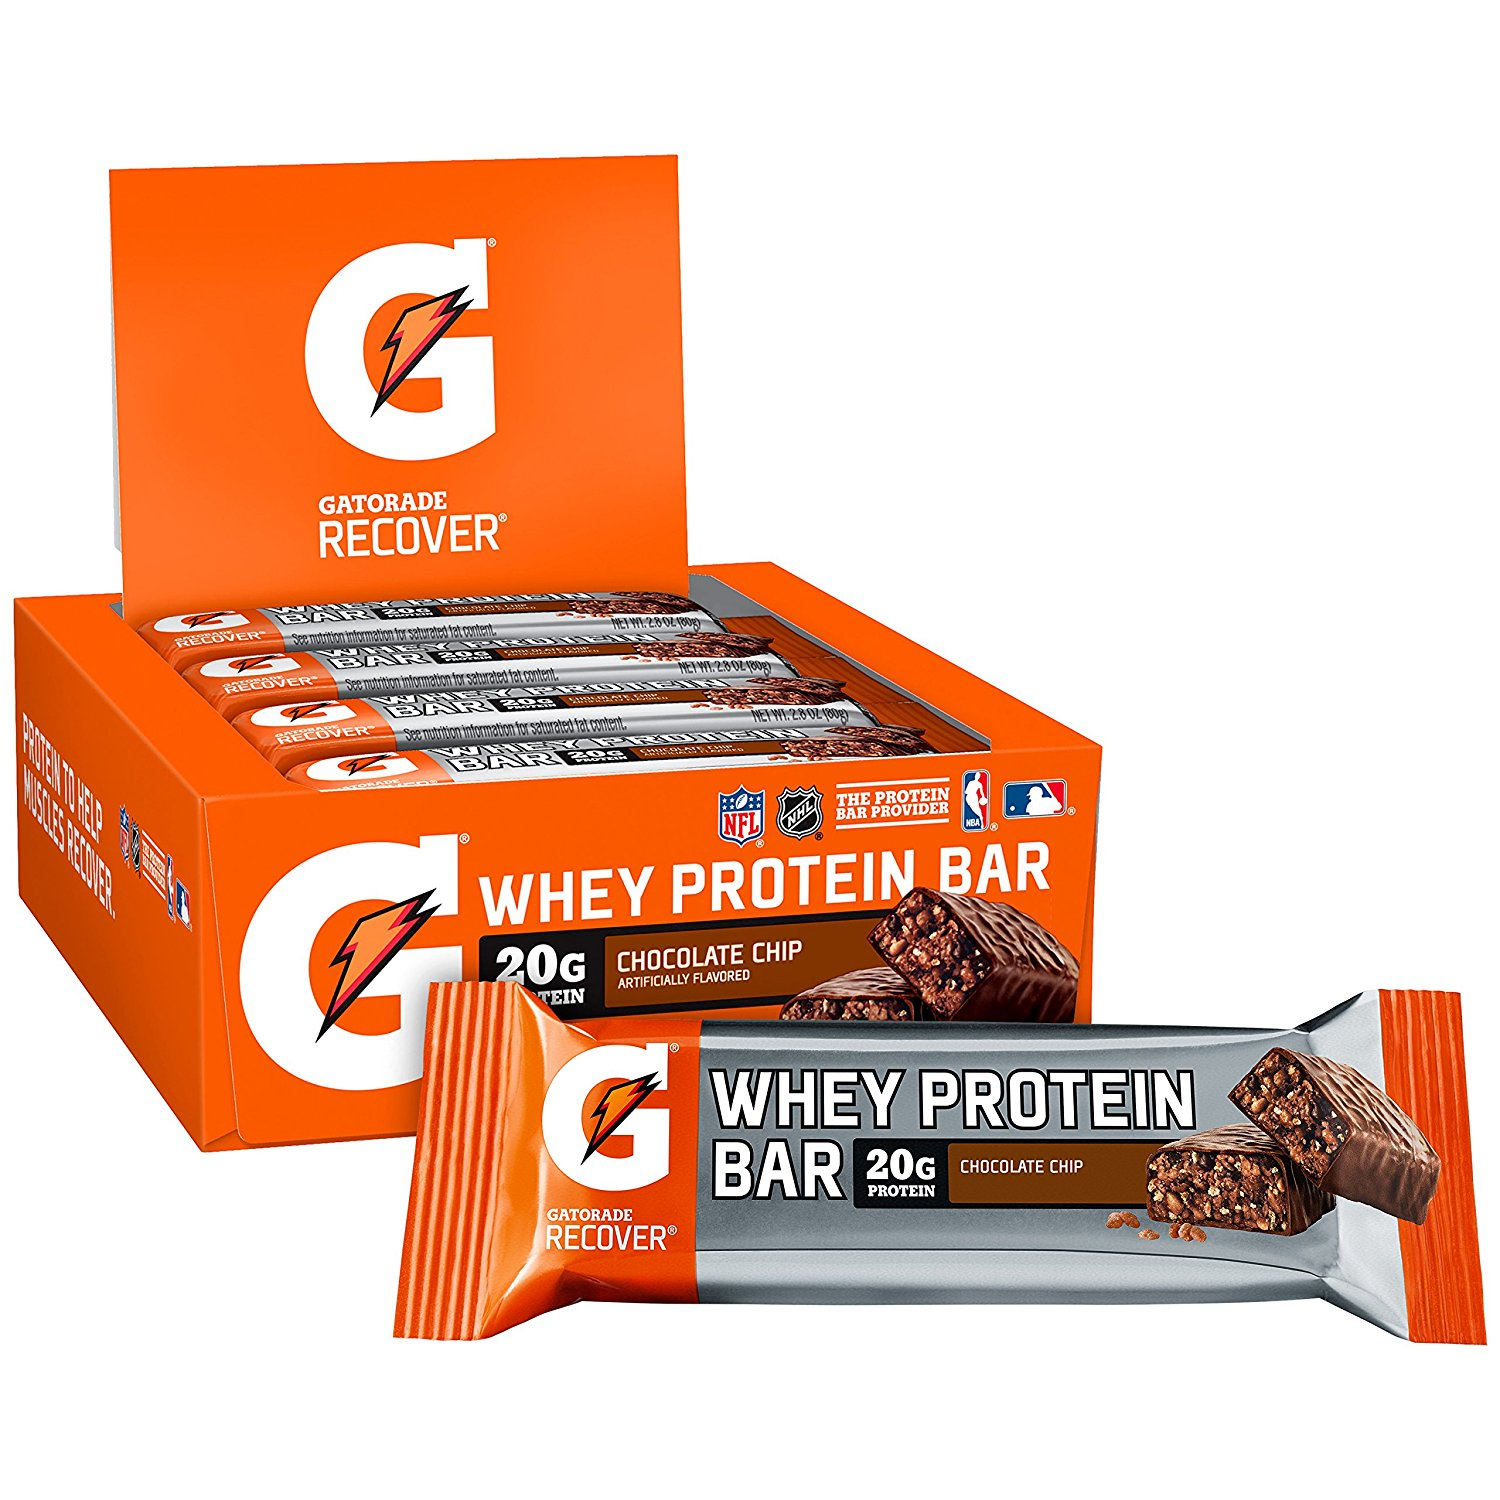 Gatorade Recover Whey Protein Bar, Chocolate Chip, 20g Protein, 12 Ct